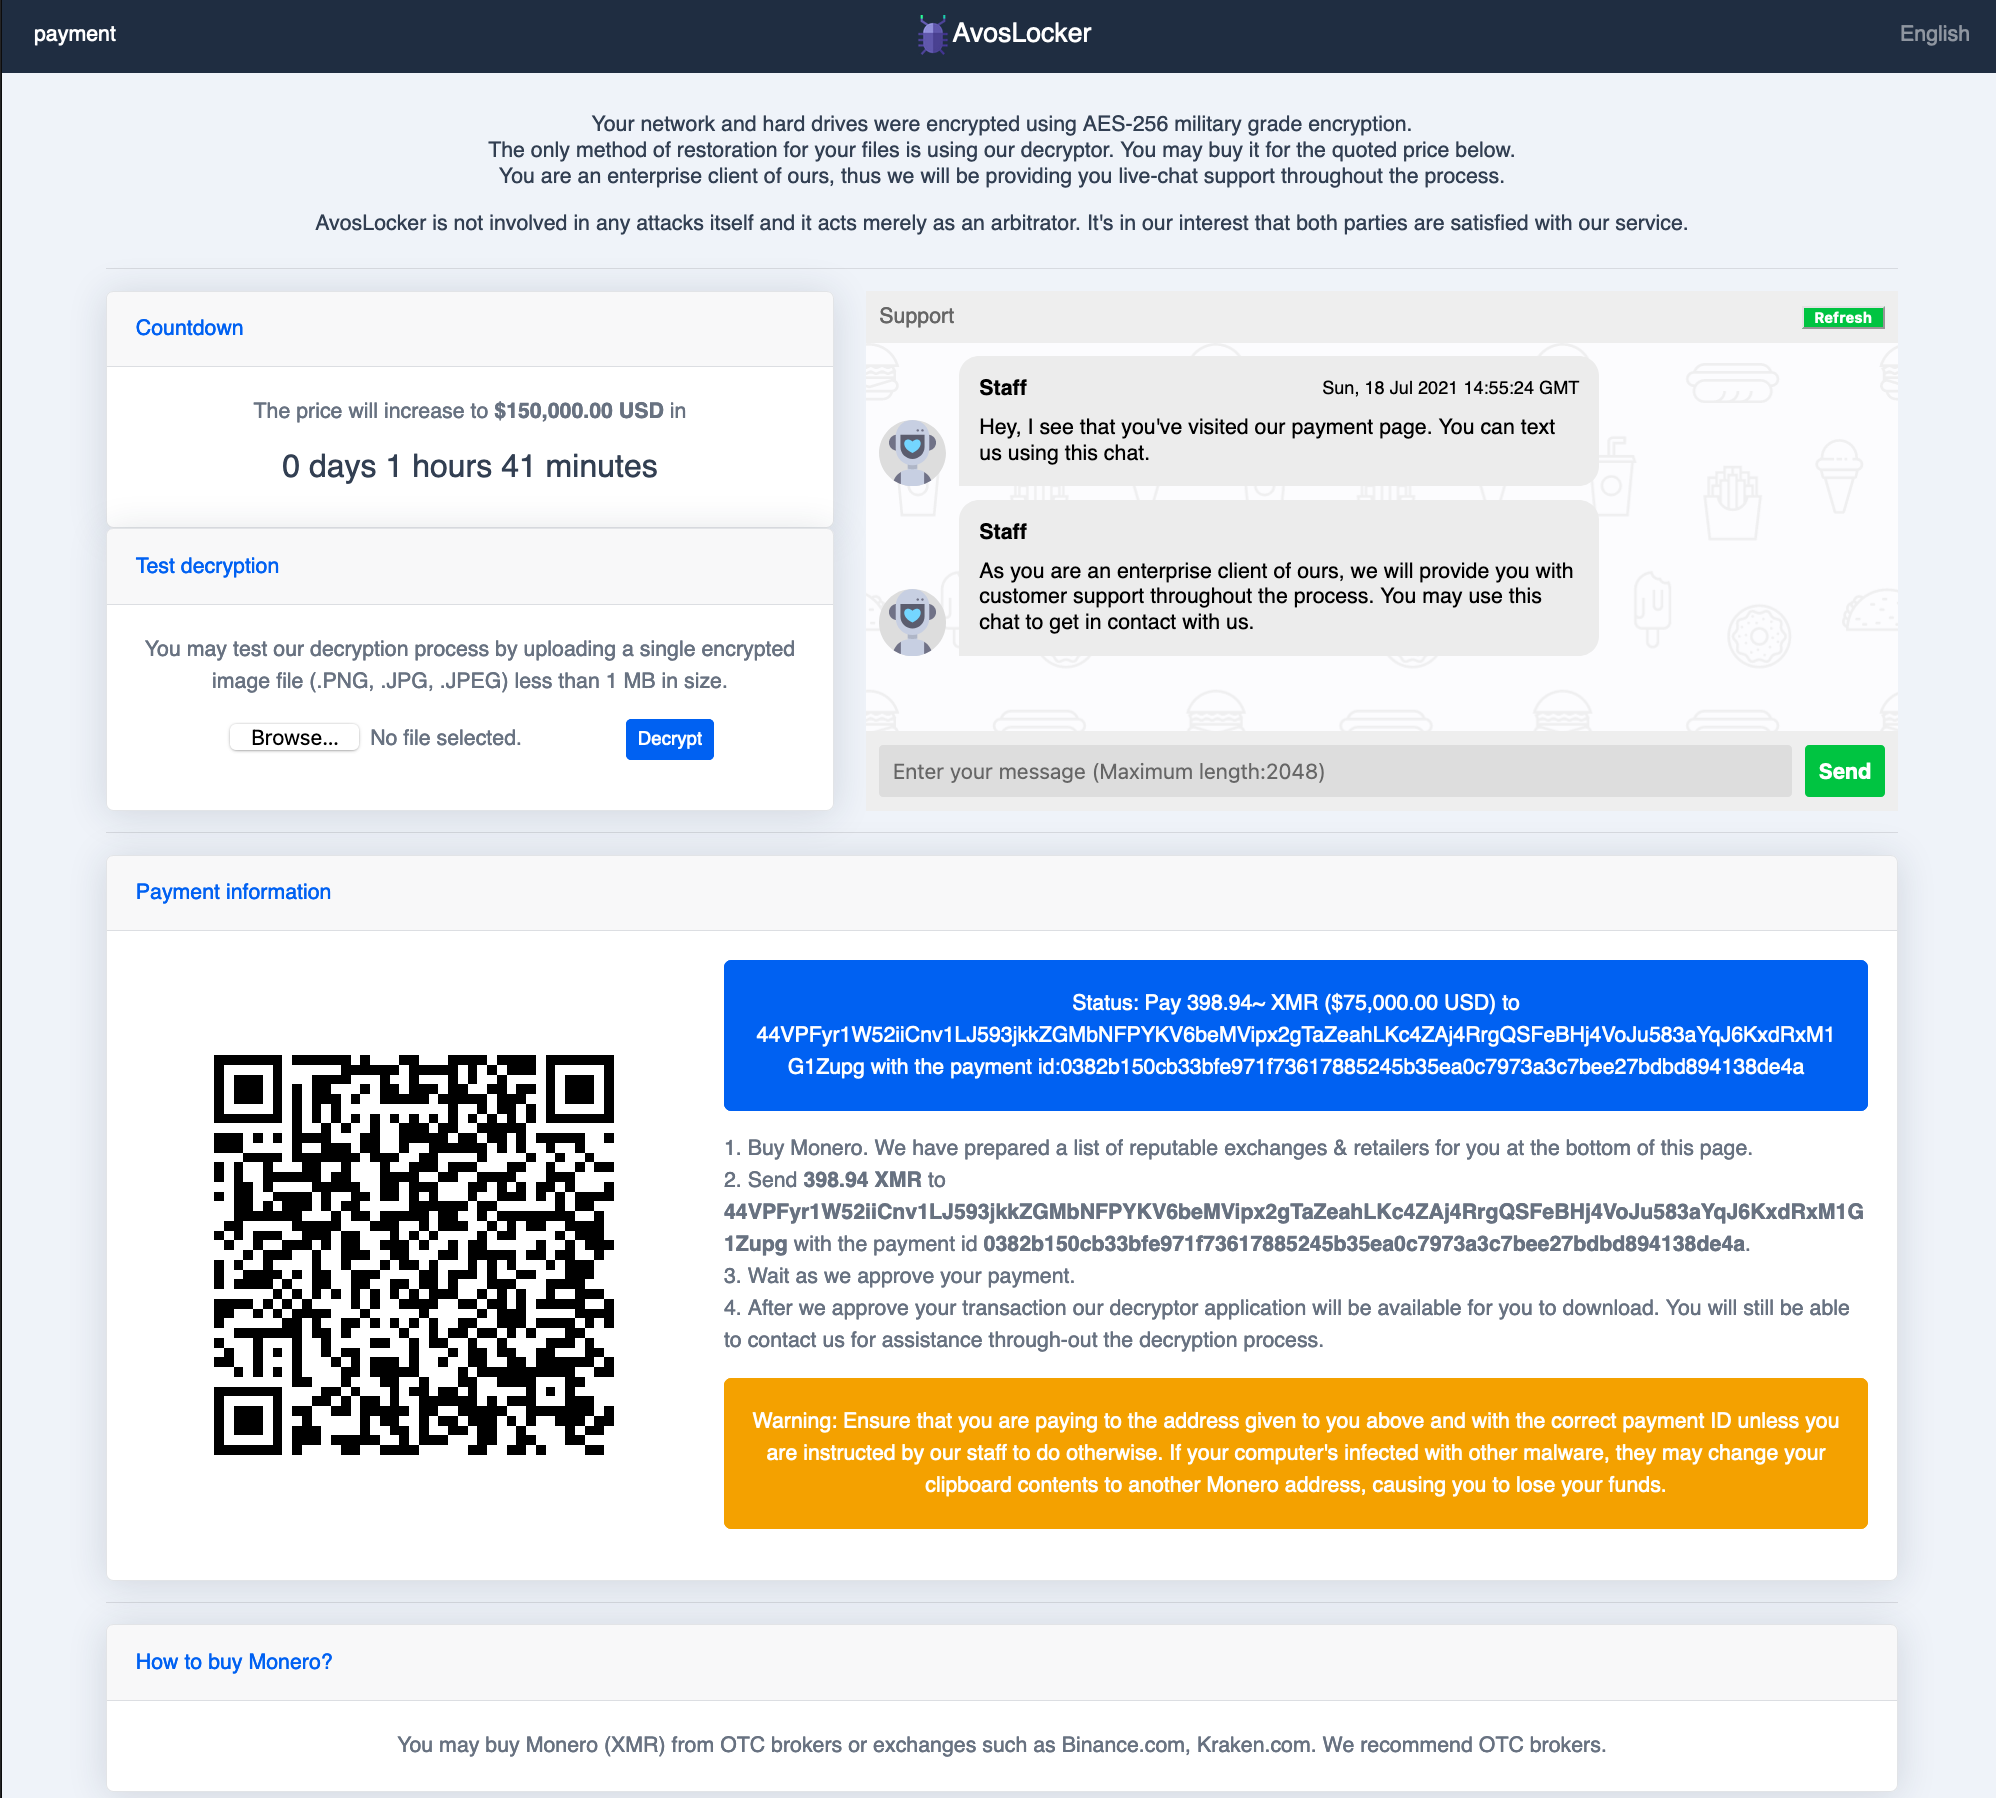 The AvosLocker support page shown features information about the ransomware and the claim that AvosLocker is not involved in attacks but instead acts as an arbitrator. It also features a countdown, a test decryption widget, an opportunity to chat with support staff, and information on how to pay.